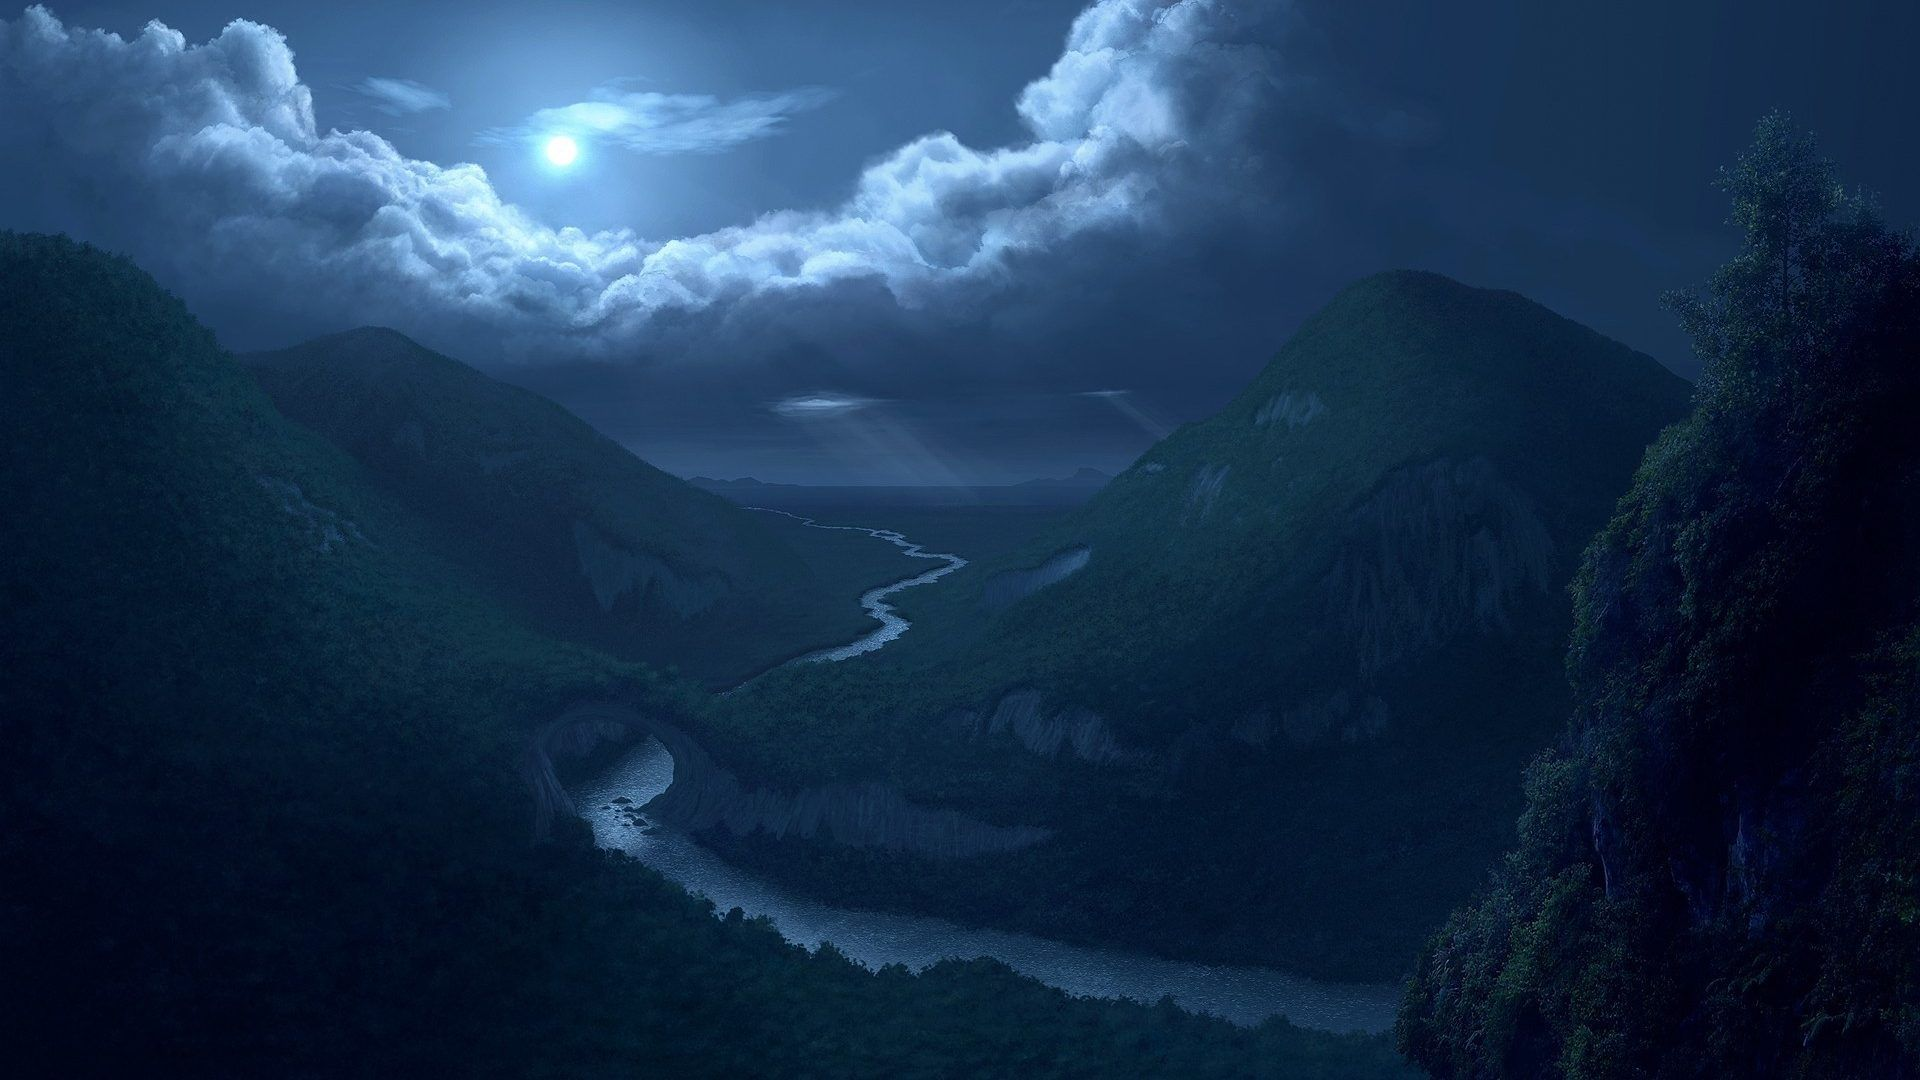 Nature Reflection Night Rivers Landscapes Valley Mountains Sky Woods Trees Clouds Forest Moon Digital Art Pictur Moonlight Painting Night Sky Moon Night Clouds Fantasy art river forest mountains sky